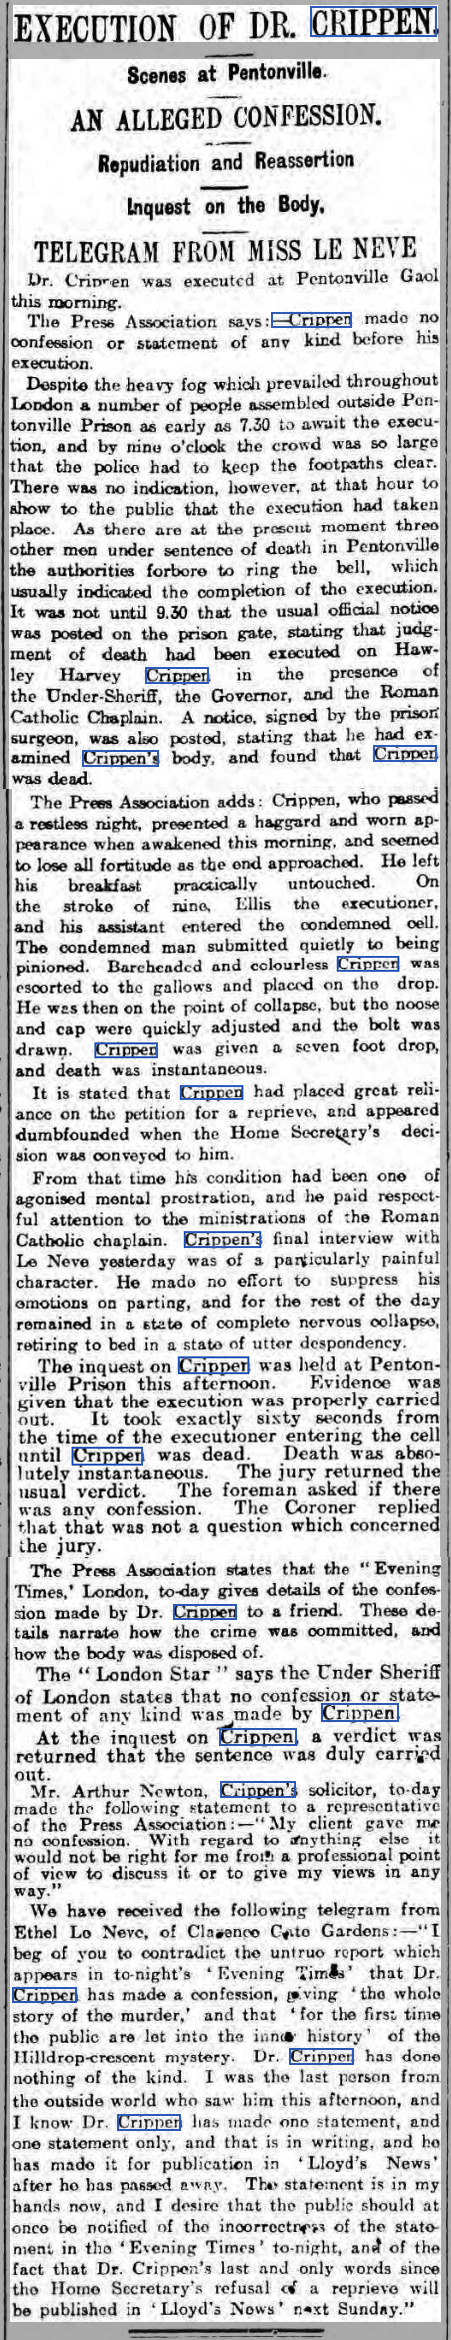 newspaper report on the execution of dr crippen